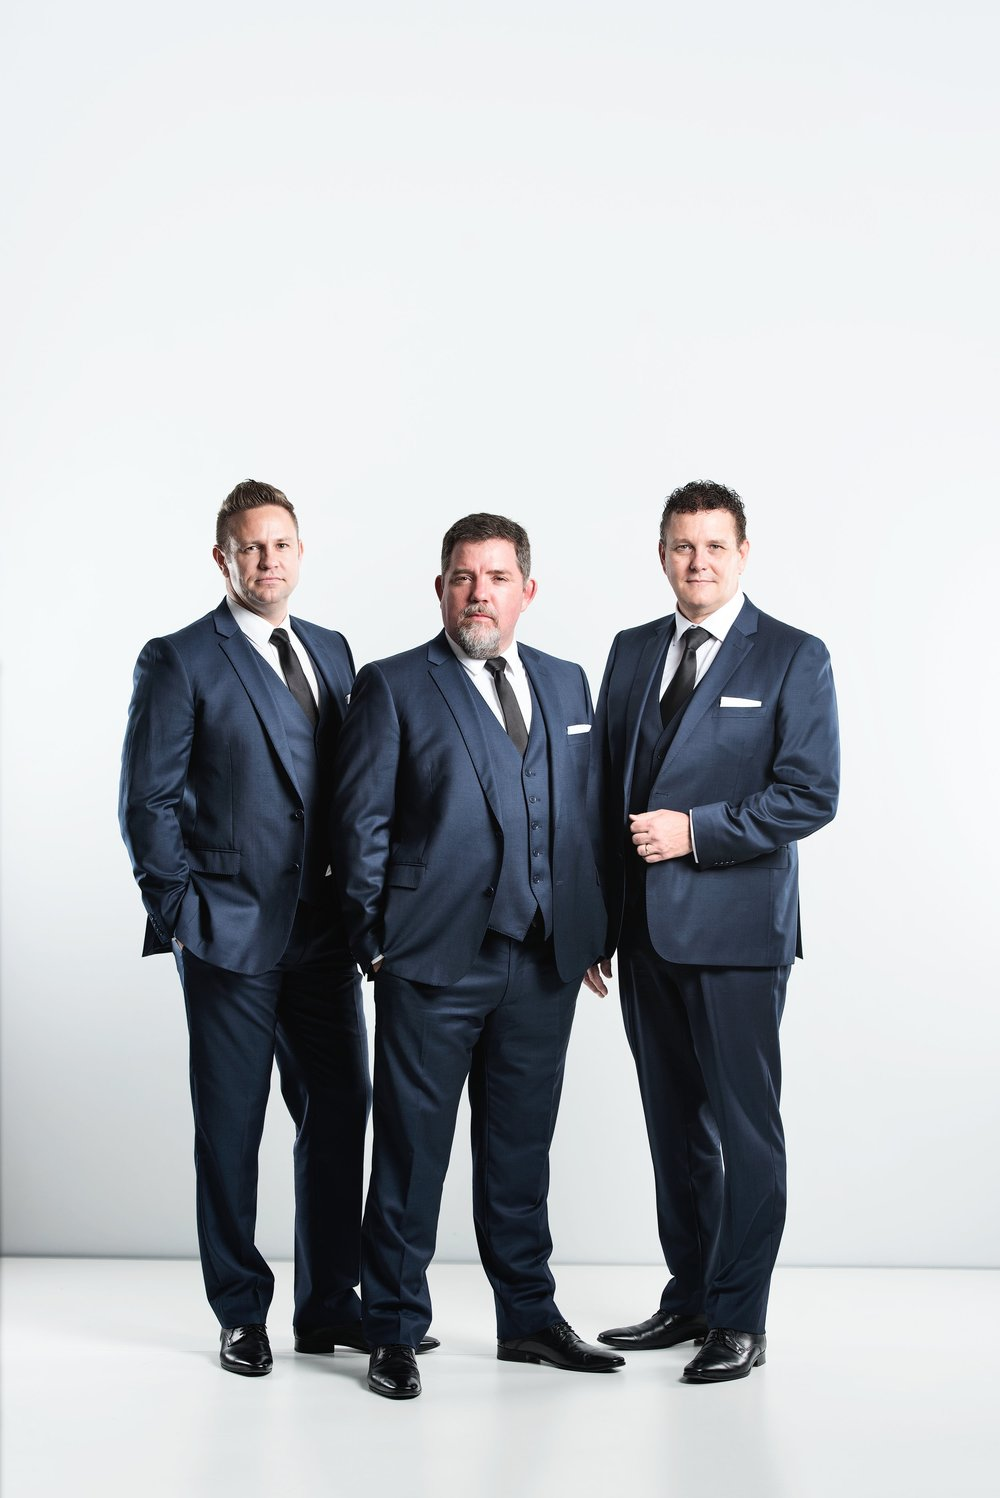 Versatile, Professional..  - Tenori is fast becoming Australia's most sought after vocal group: David Kidd, Craig Atkinson and Andrew Pryor continue to bring their sense of fun and sophistication to classics from the worlds of Opera, Music Theatre, Jazz and everything in between. After two successful tours of Australia in recent years, their fanbase and performing schedule continues to expand as they continue to do what they do best: sing great songs, in ways that the audience loves to hear.They are highly versatile artists capable of performing with the simplicity of a single guitar, right through to orchestras and big bands and any combination in between.